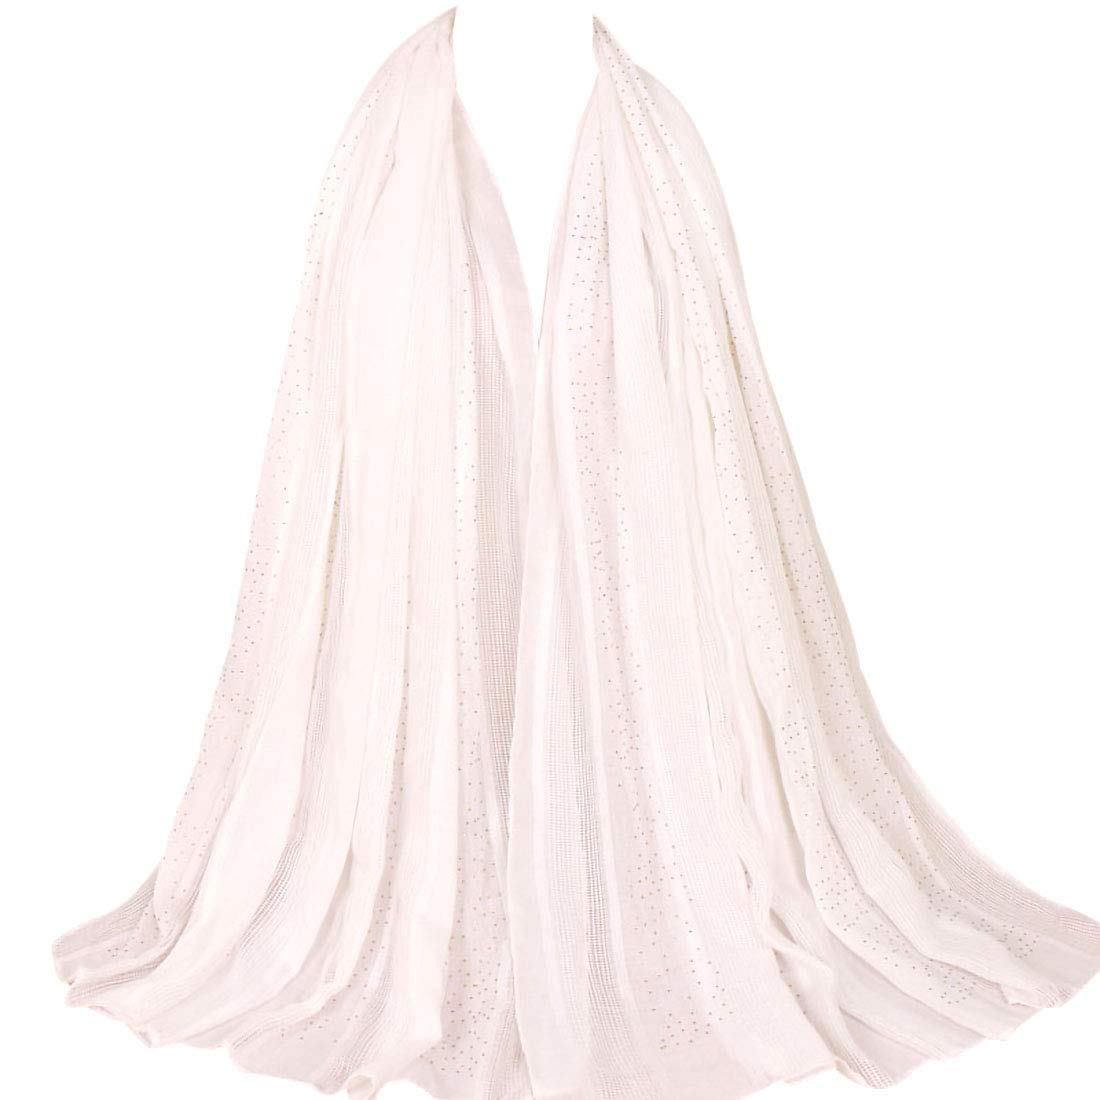 Women's Winter Warm Scarfs Long Soft Cotton Fashion Scarves Lightweight Shawls and Wraps for Evening Wedding Scarf Solid Colors White